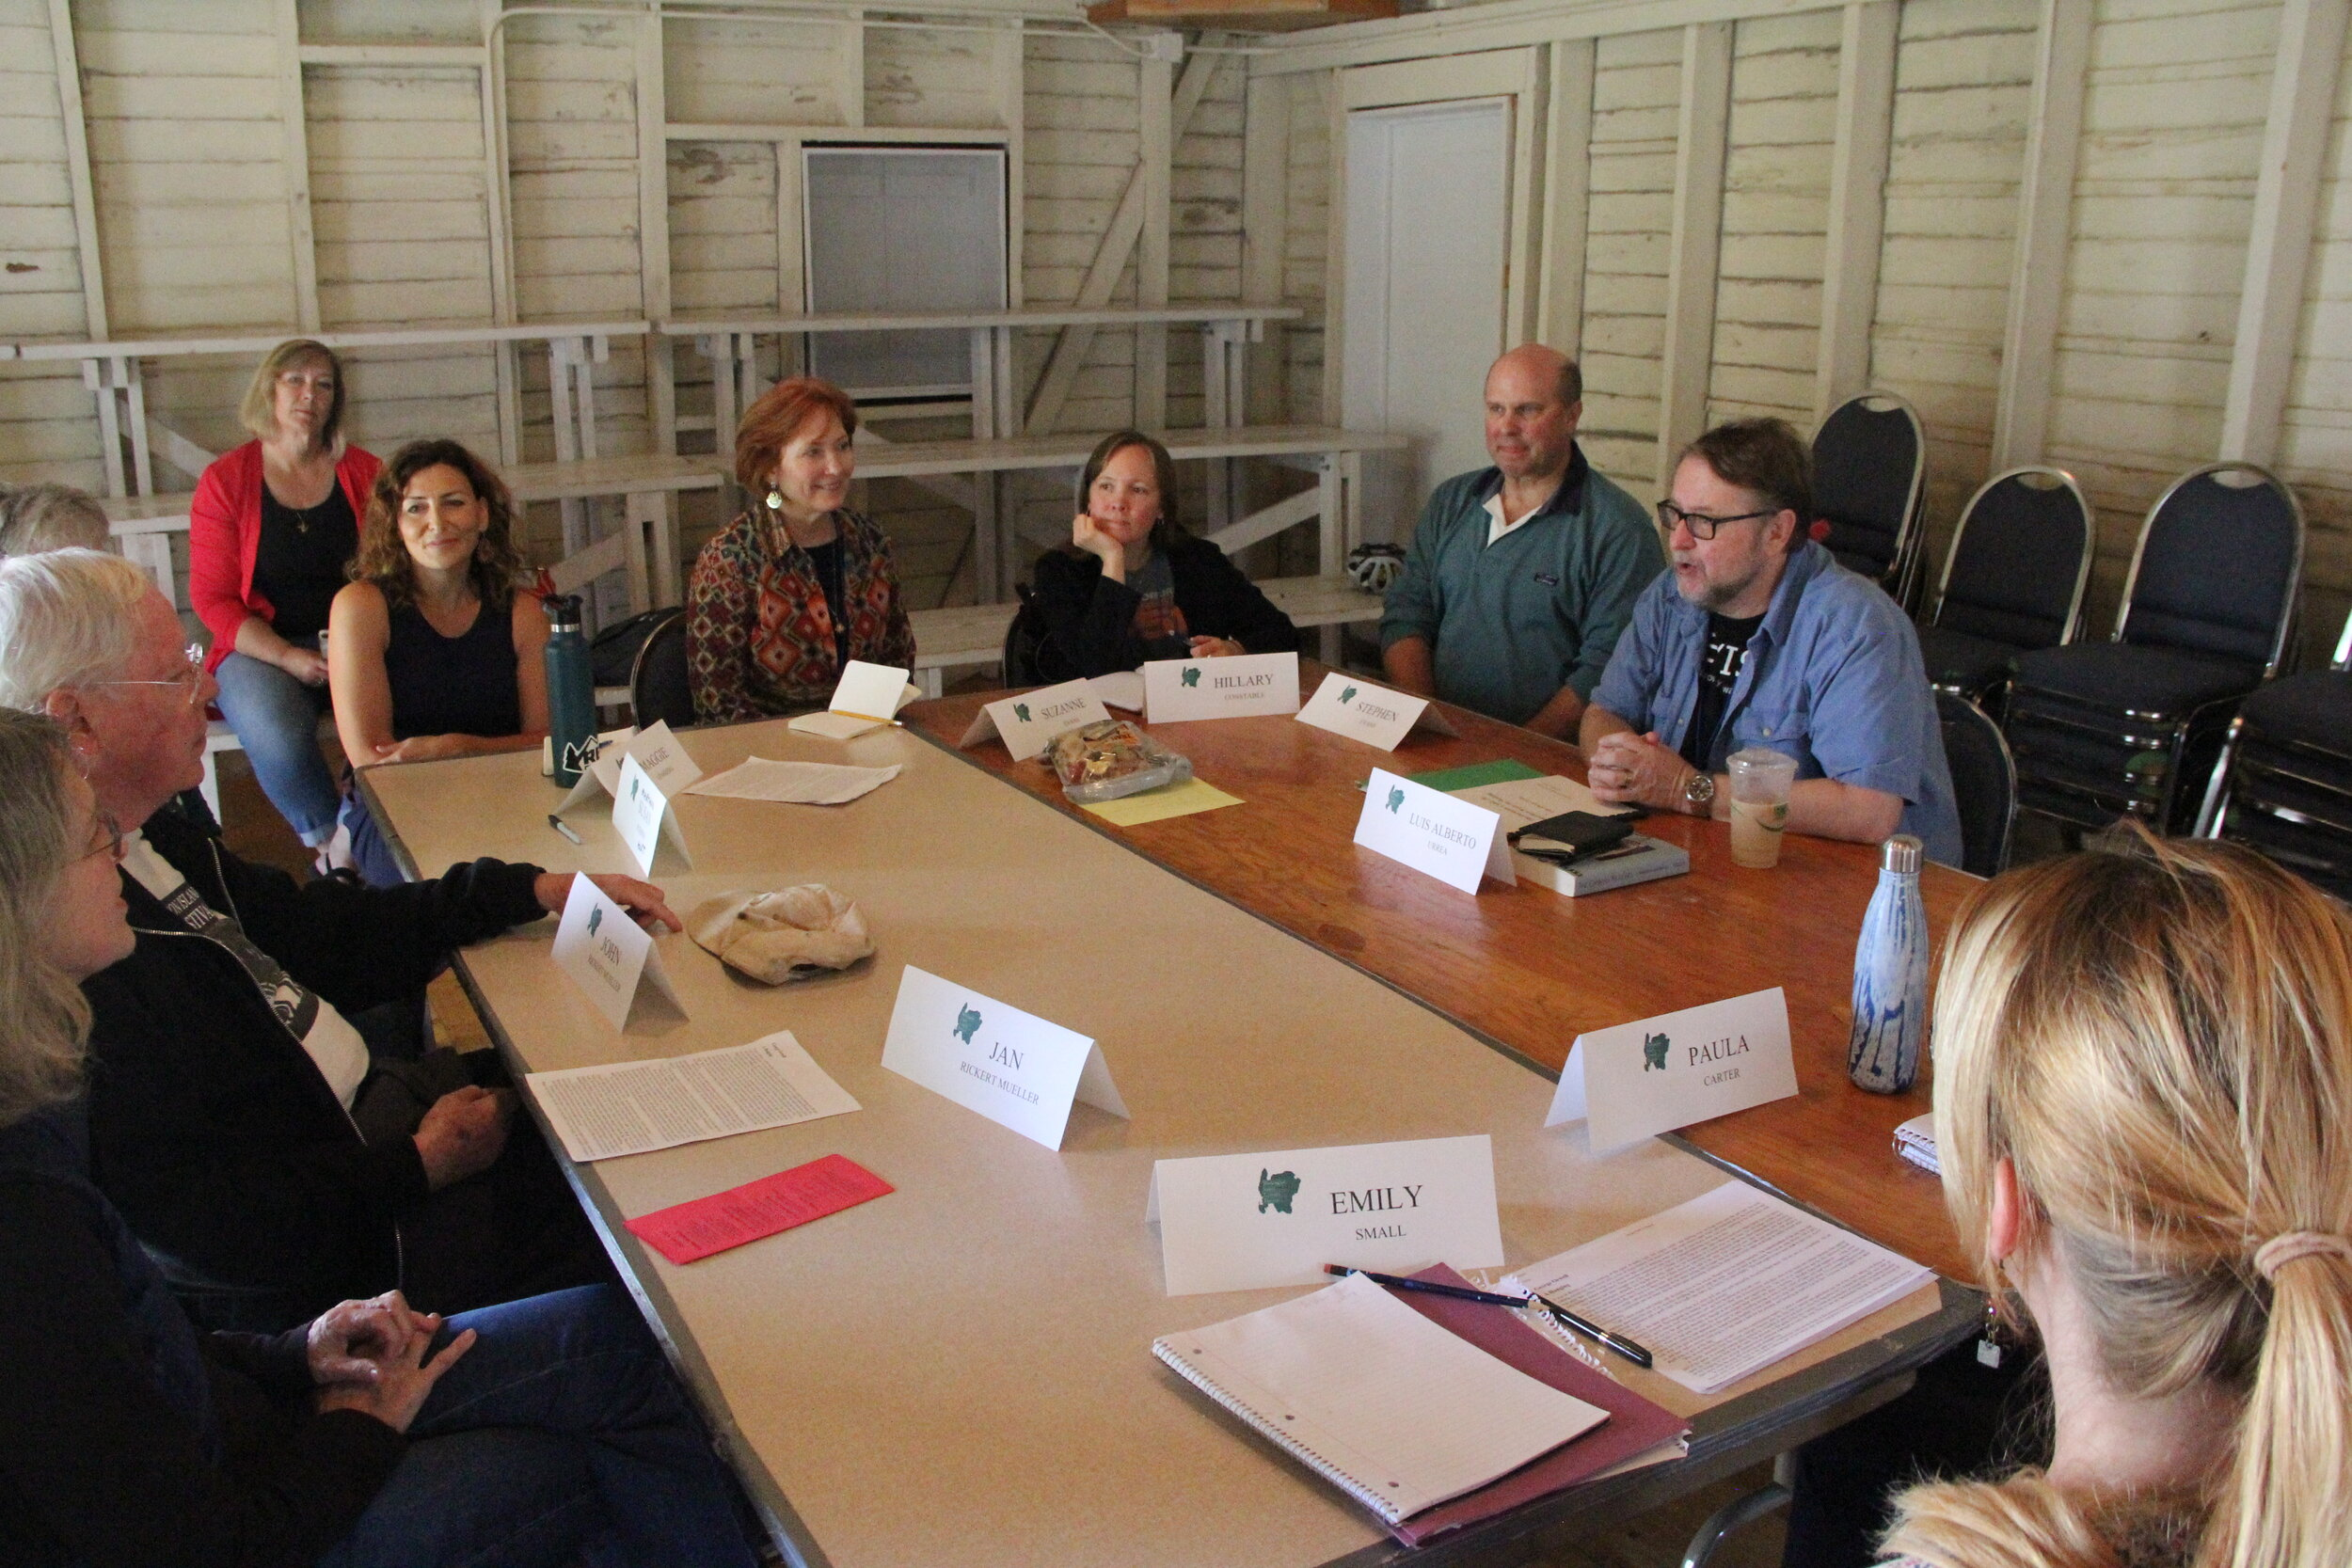 Luis Alberto Urrea's Fiction workshop in the Red Barn